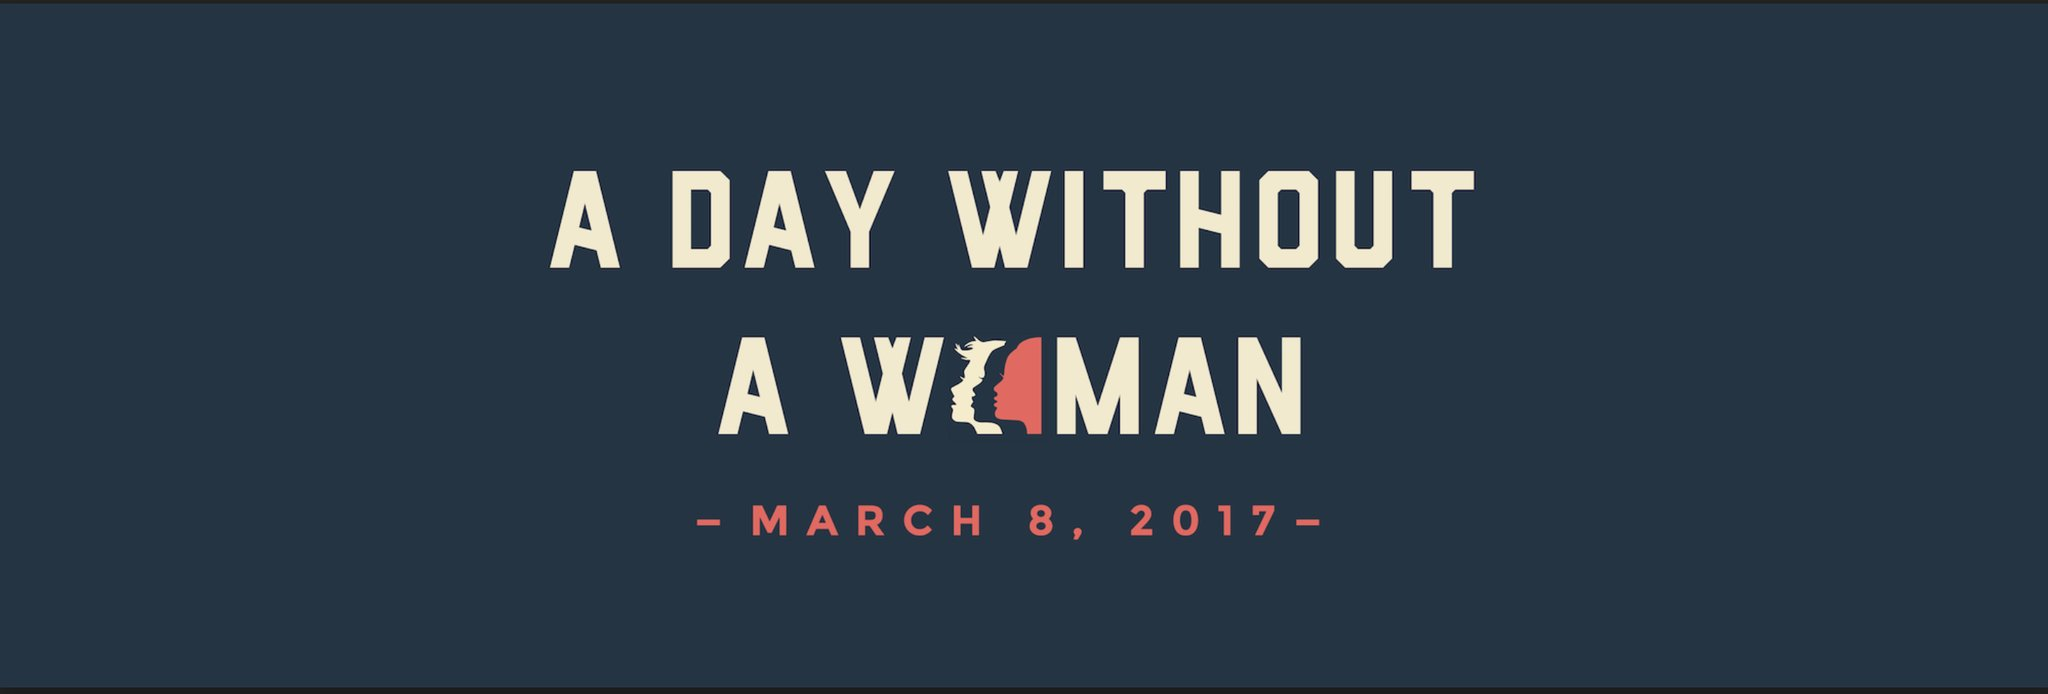 RETWEET if you support equal rights for women and will be taking part in #adaywithoutwomen in some fashion tomorrow! https://t.co/1NqYFJSxDB